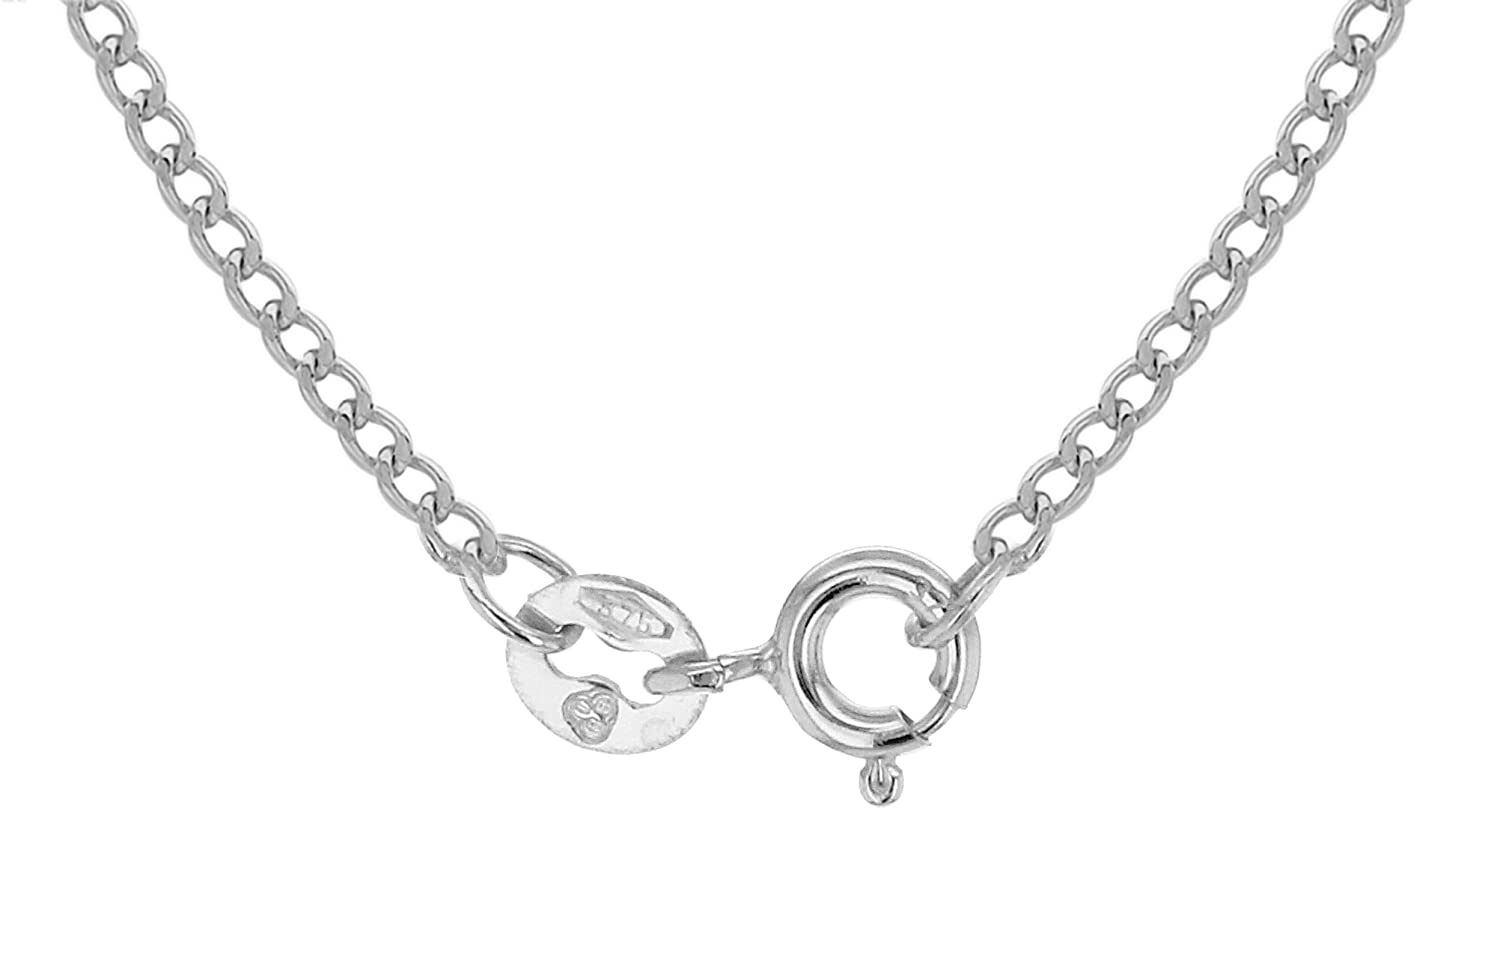 Or 9 Carat Carissima Gold Collier Maille Gourmette 375//1000